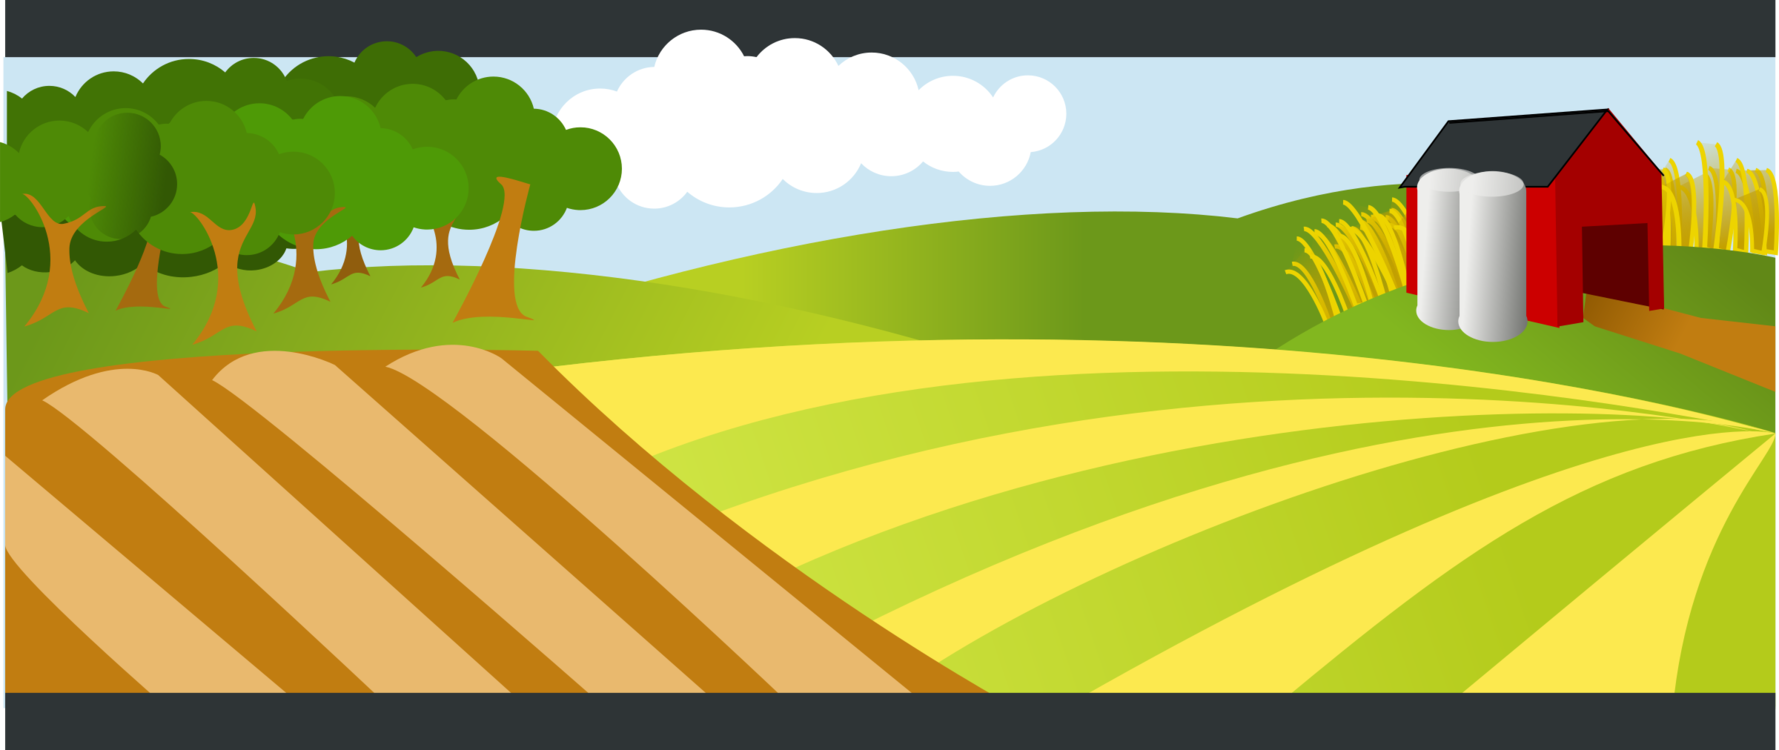 Grass angle text png. Farm clipart agricultural land